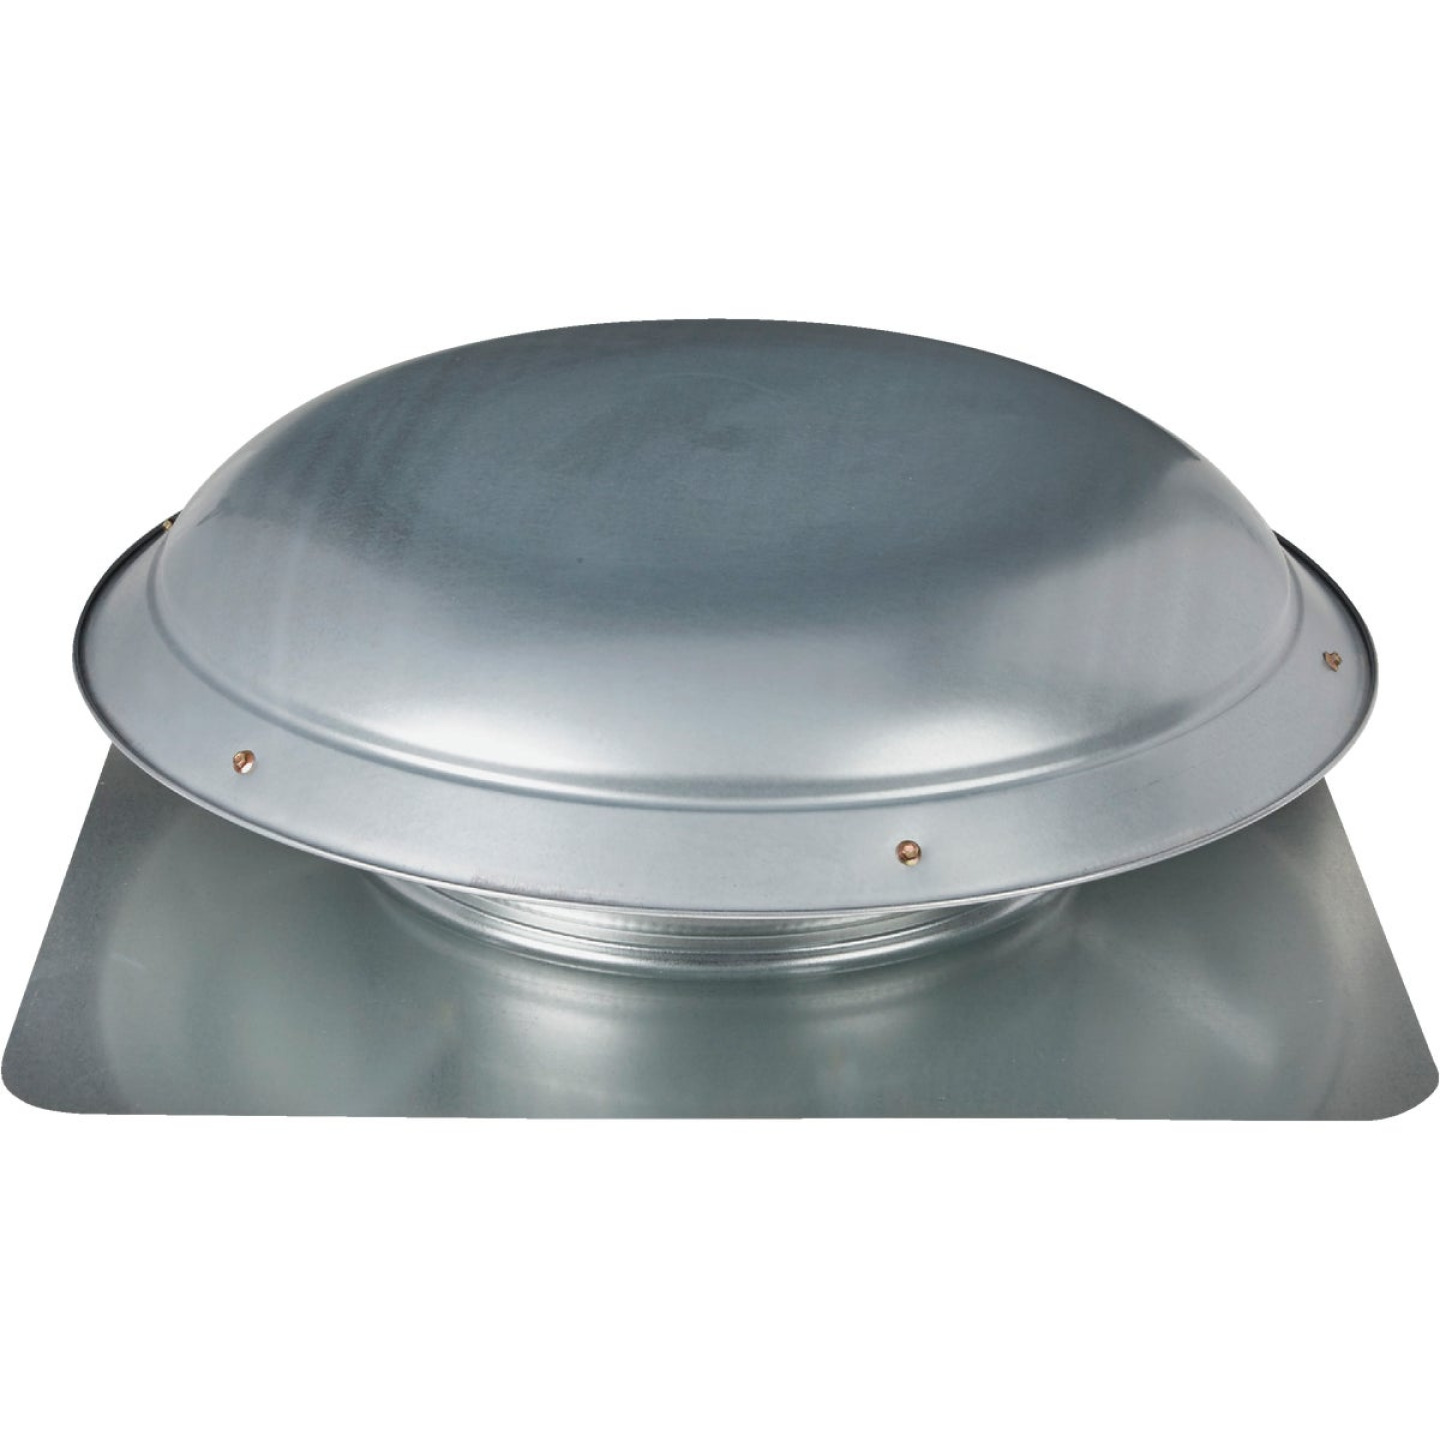 Ventamatic 1080 CFM Galvanized Steel Power Roof Mount Attic Vent Mill Image 1